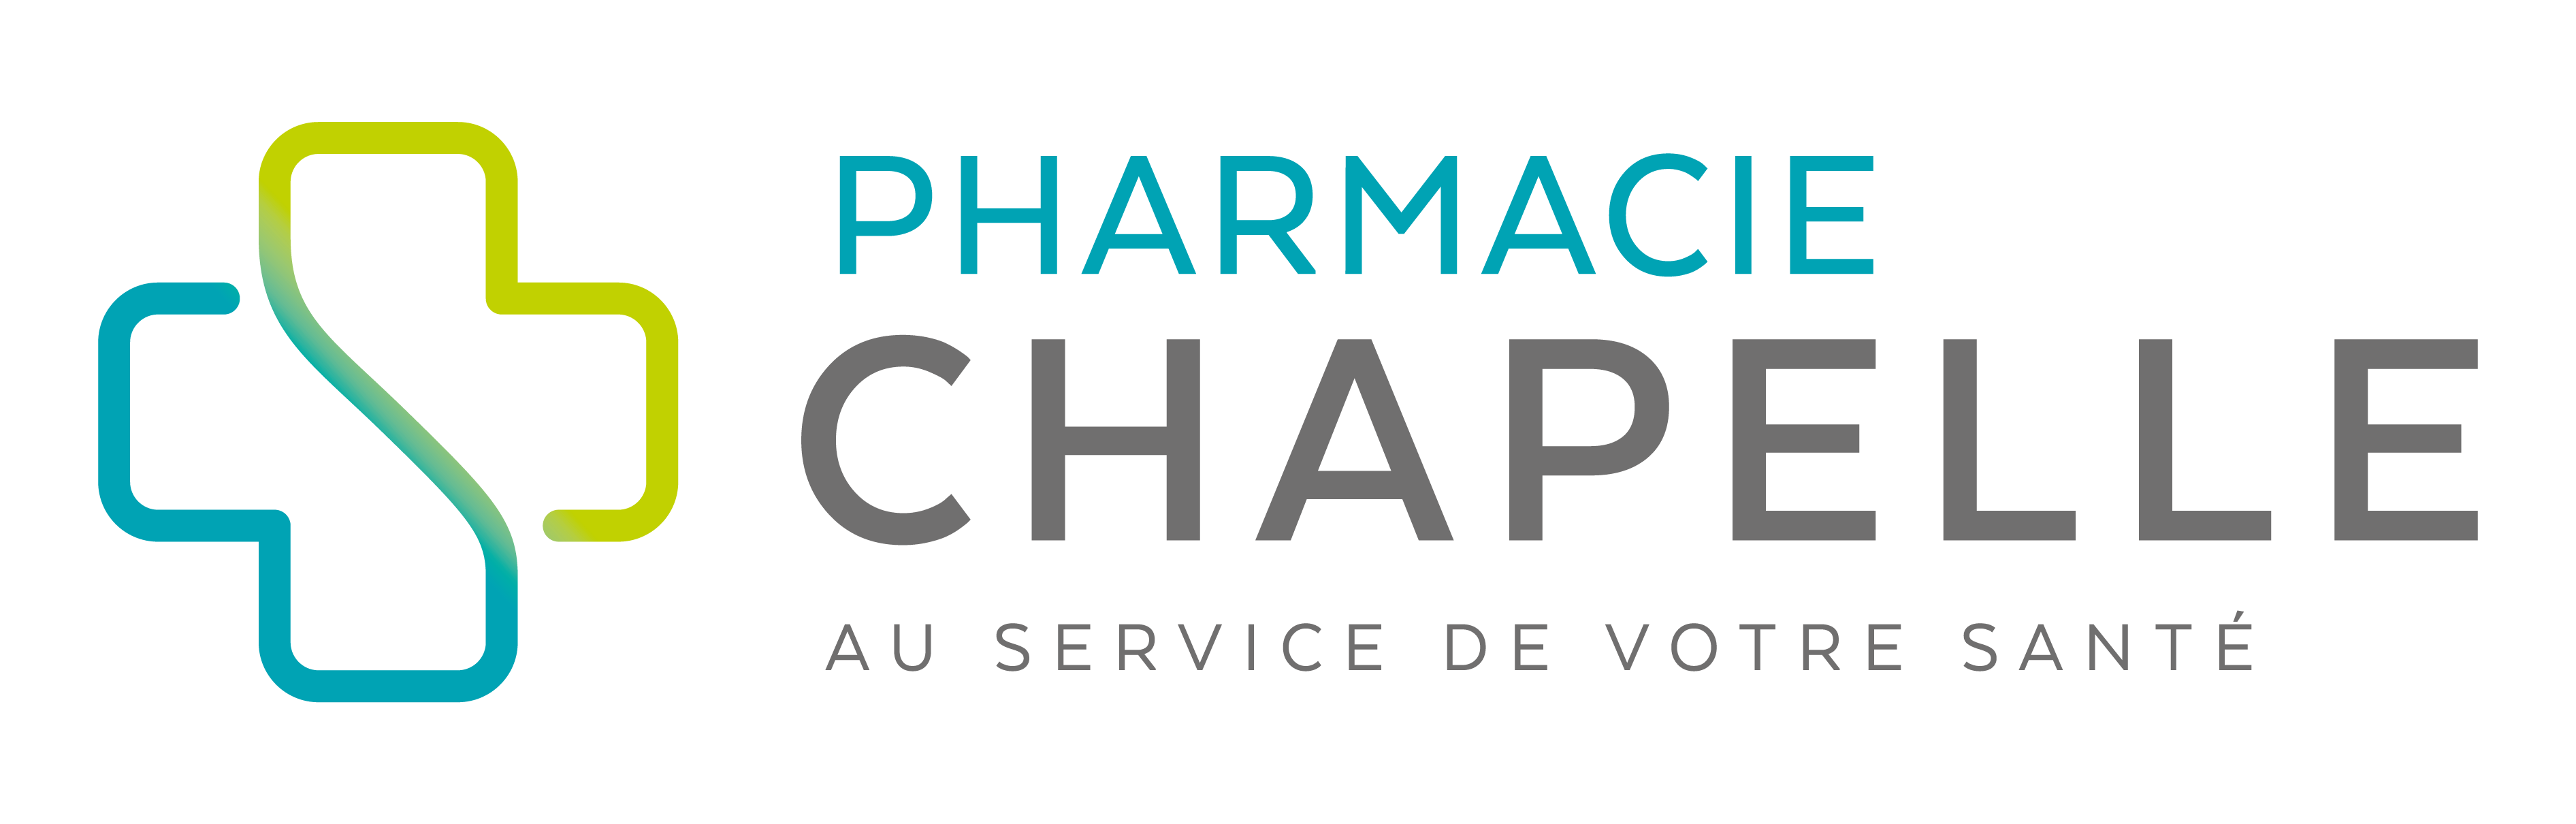 Pharmacie Chapelle